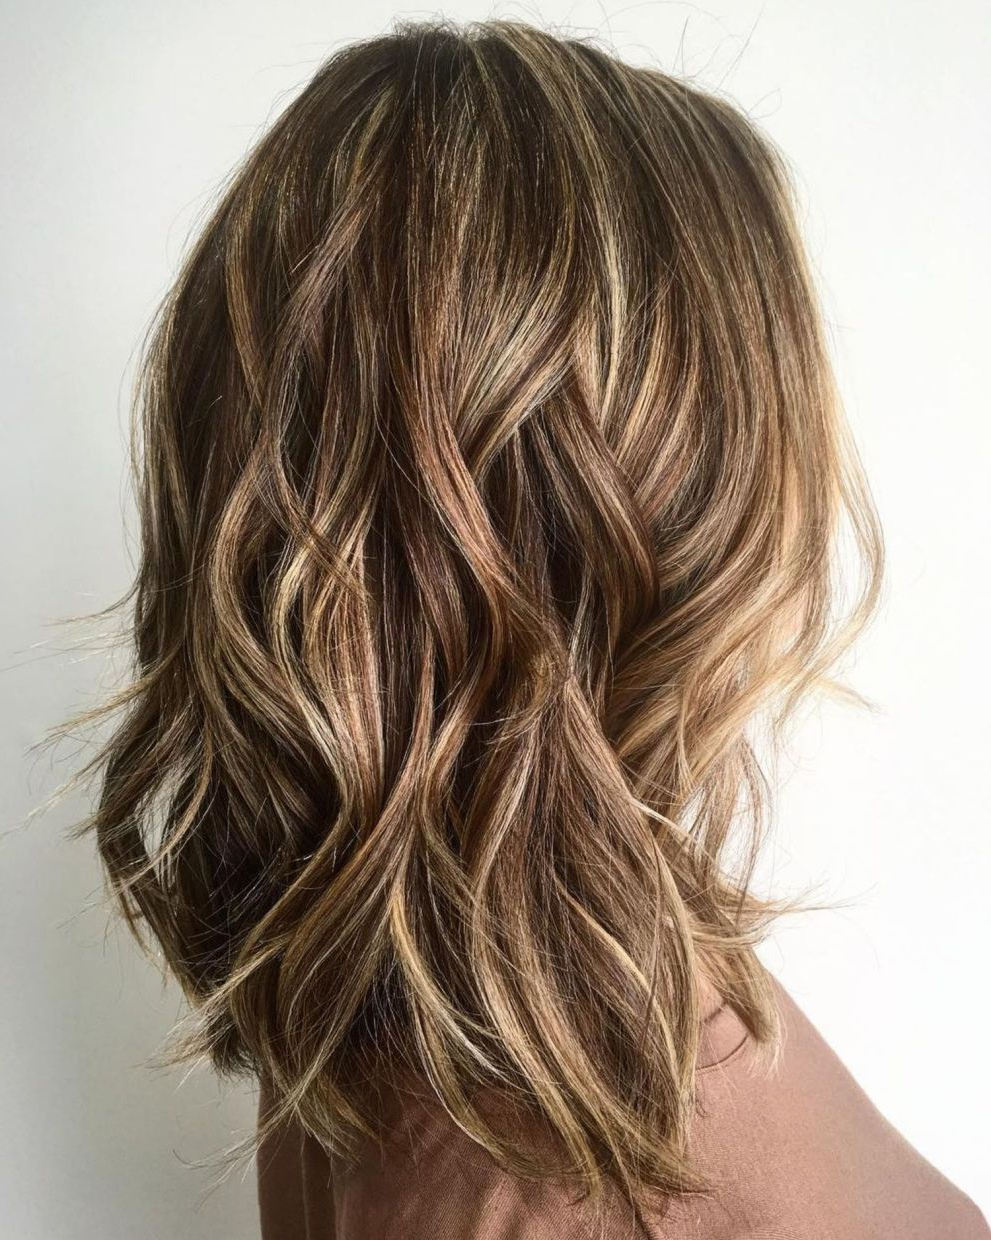 Fashionable Medium Hairstyles And Highlights Intended For 60 Fun And Flattering Medium Hairstyles For Women In 2018 (Gallery 18 of 20)